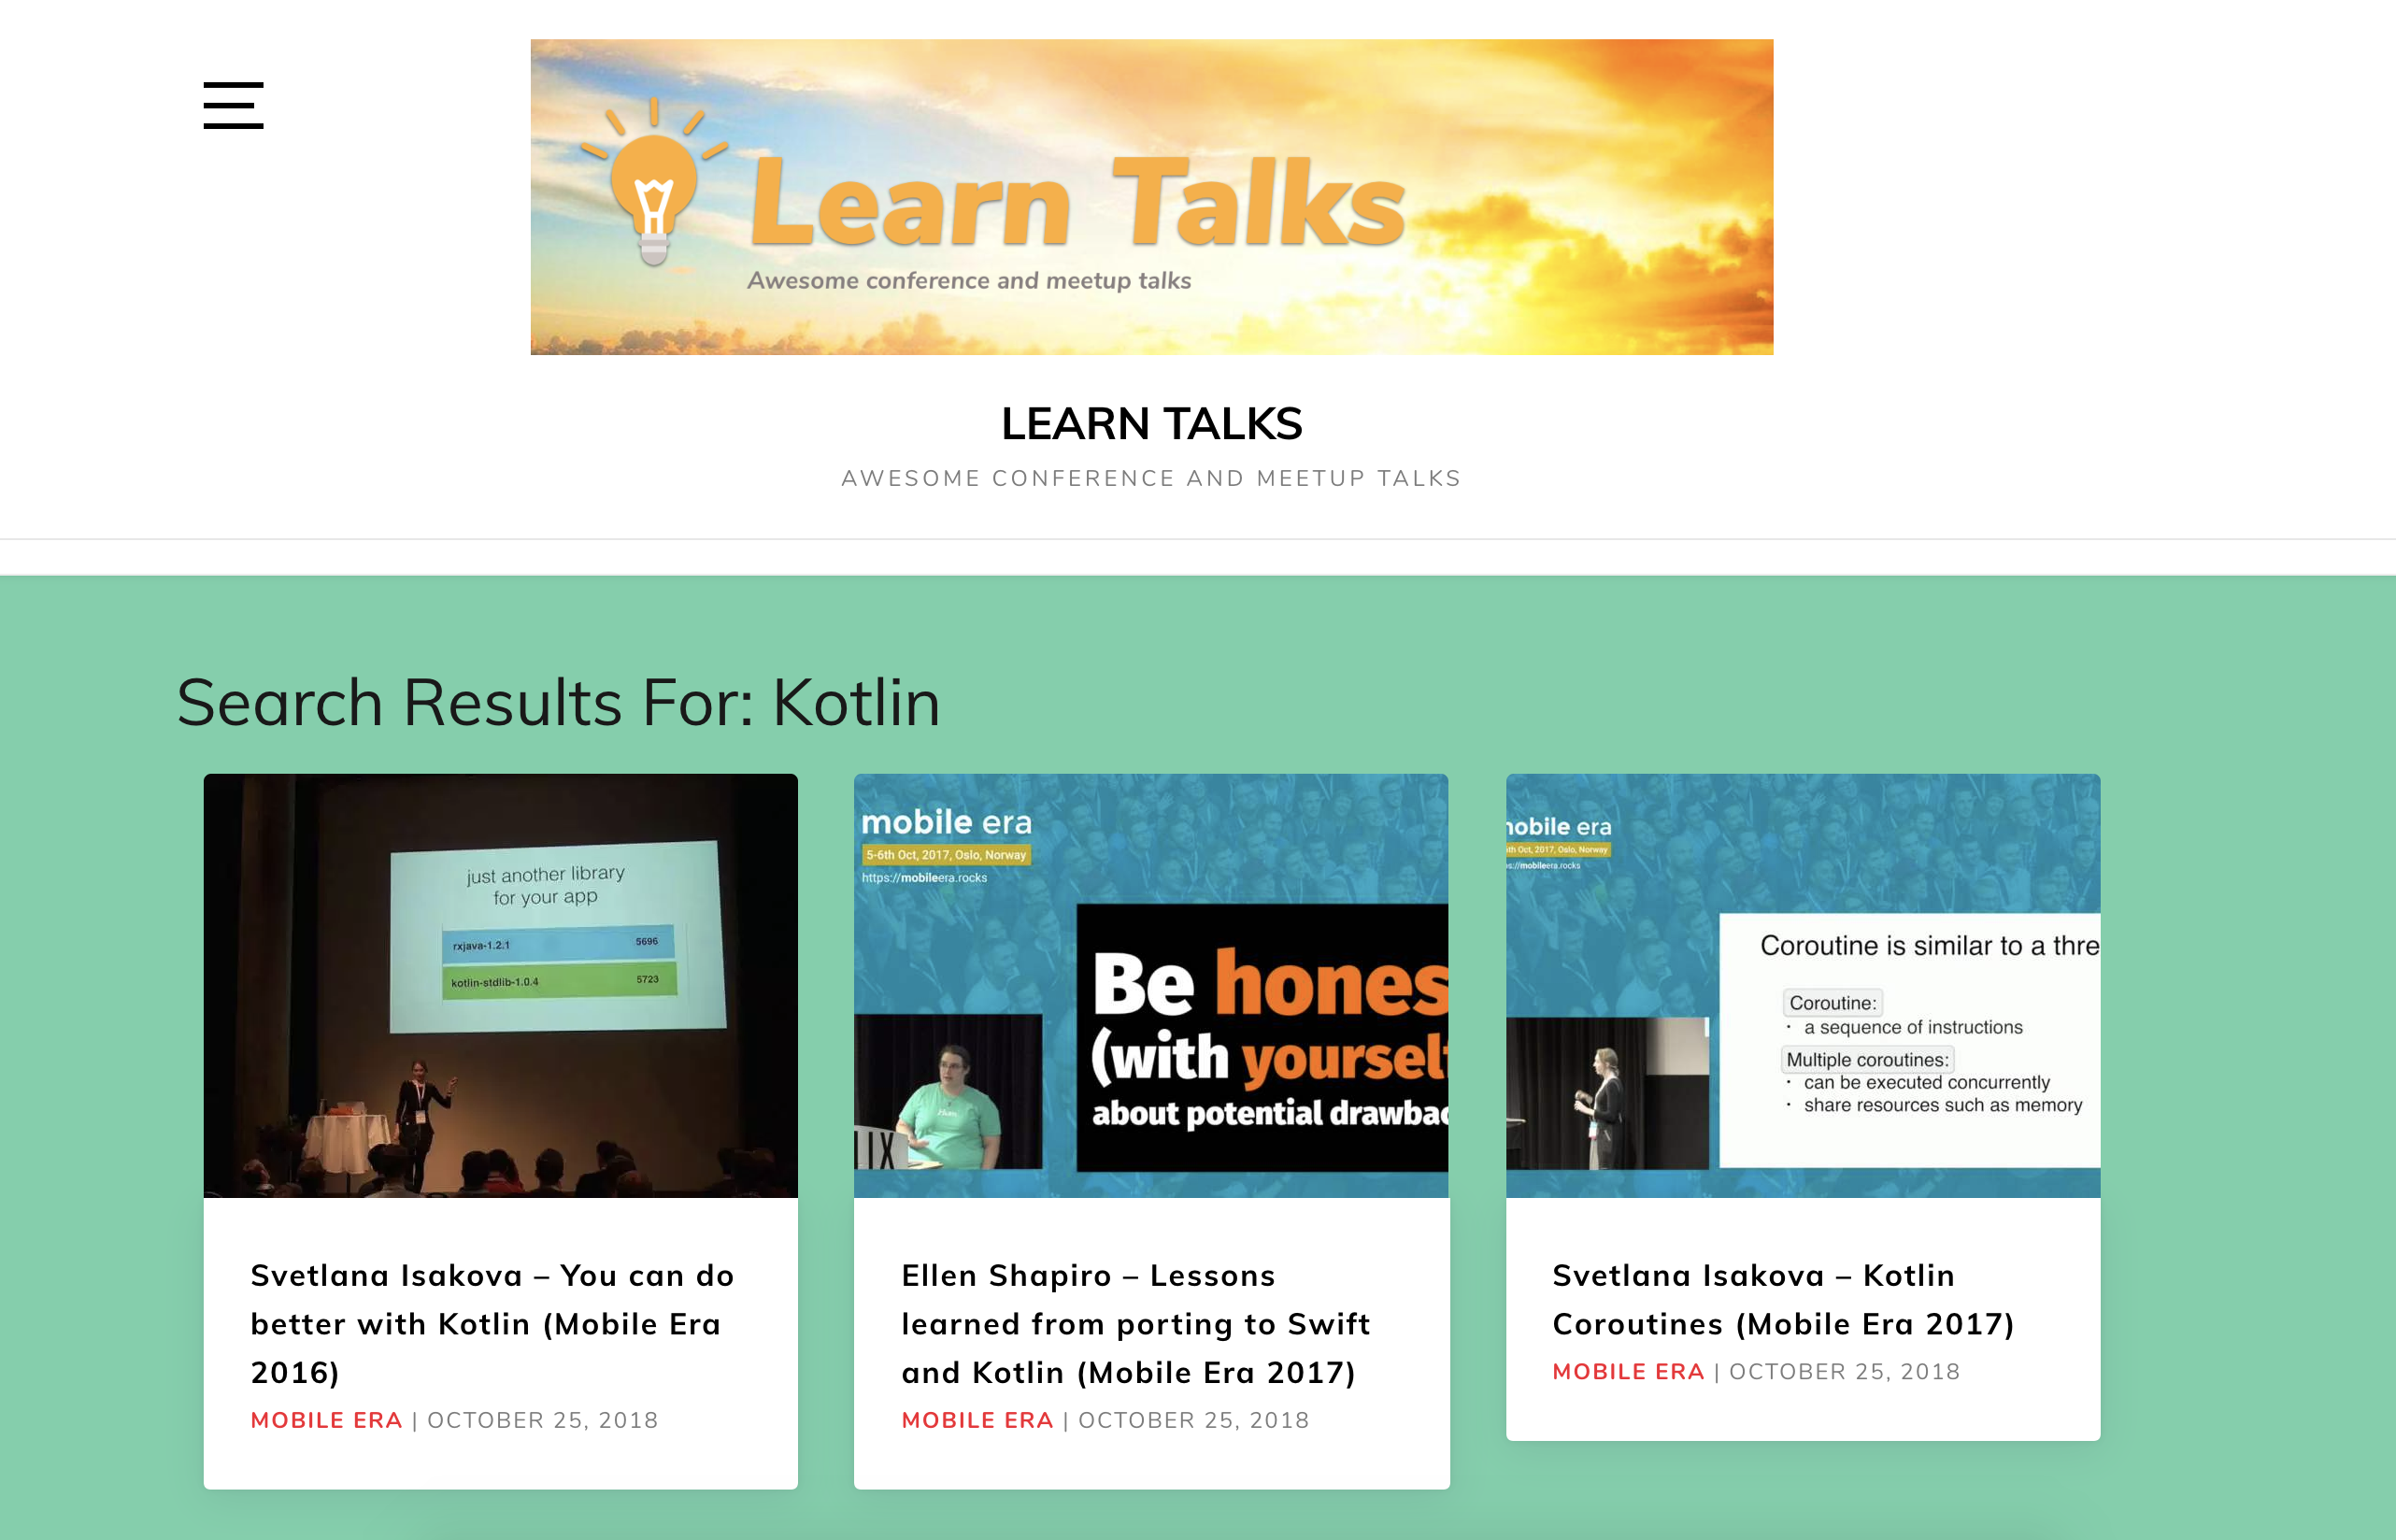 Introducing Learn Talks — Awesome conference and meetup talks